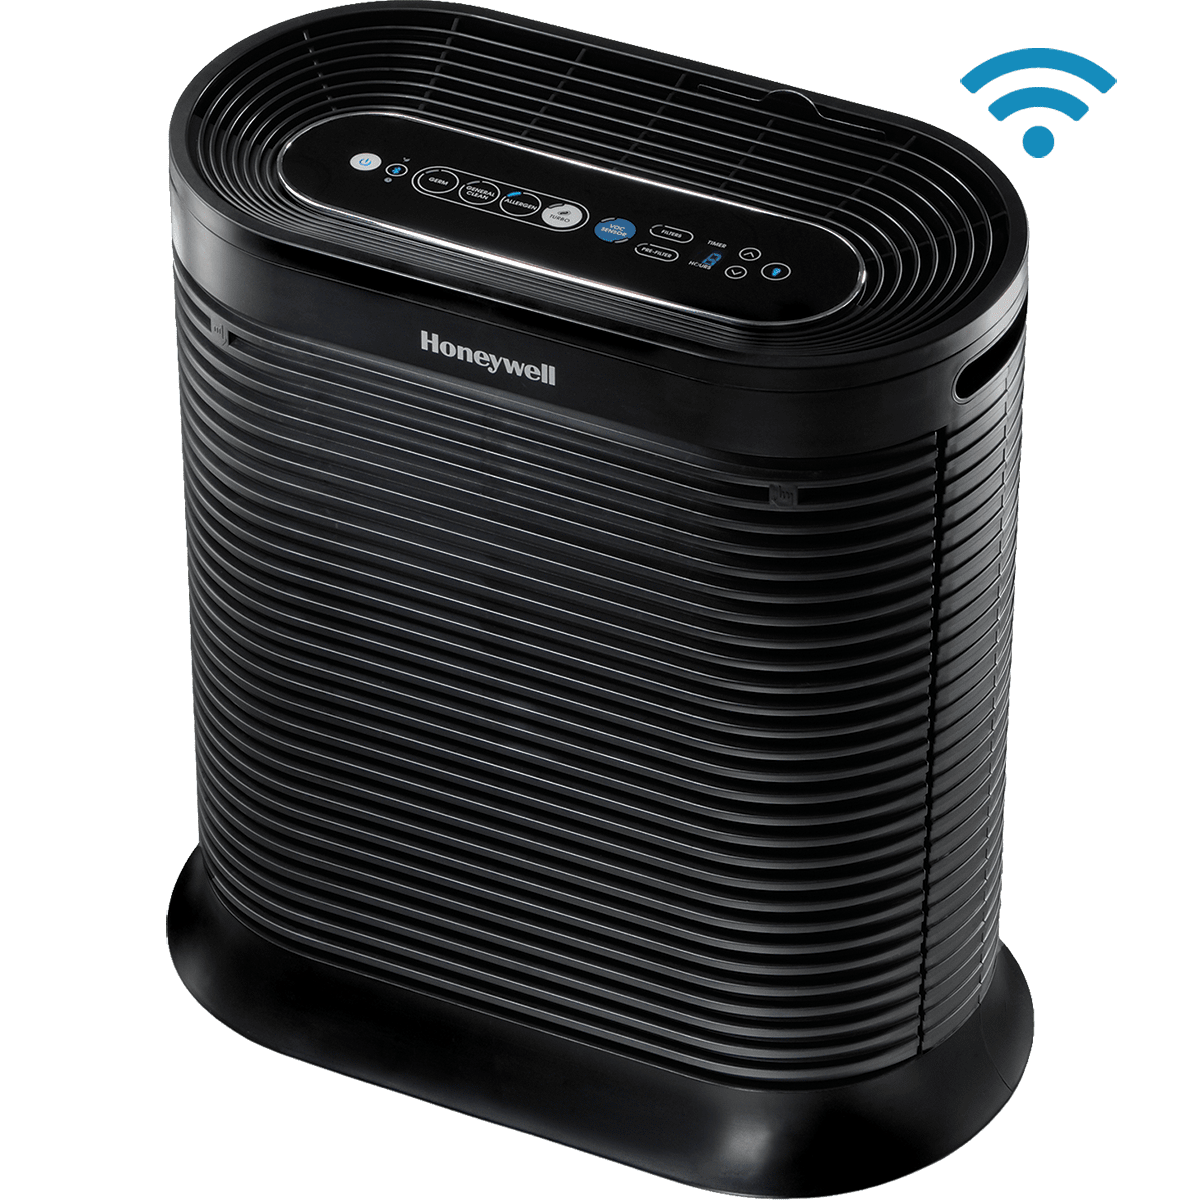 Honeywell HPA250B Bluetooth Smart True HEPA Allergen Remover Console Air Purifier - Black ho5507